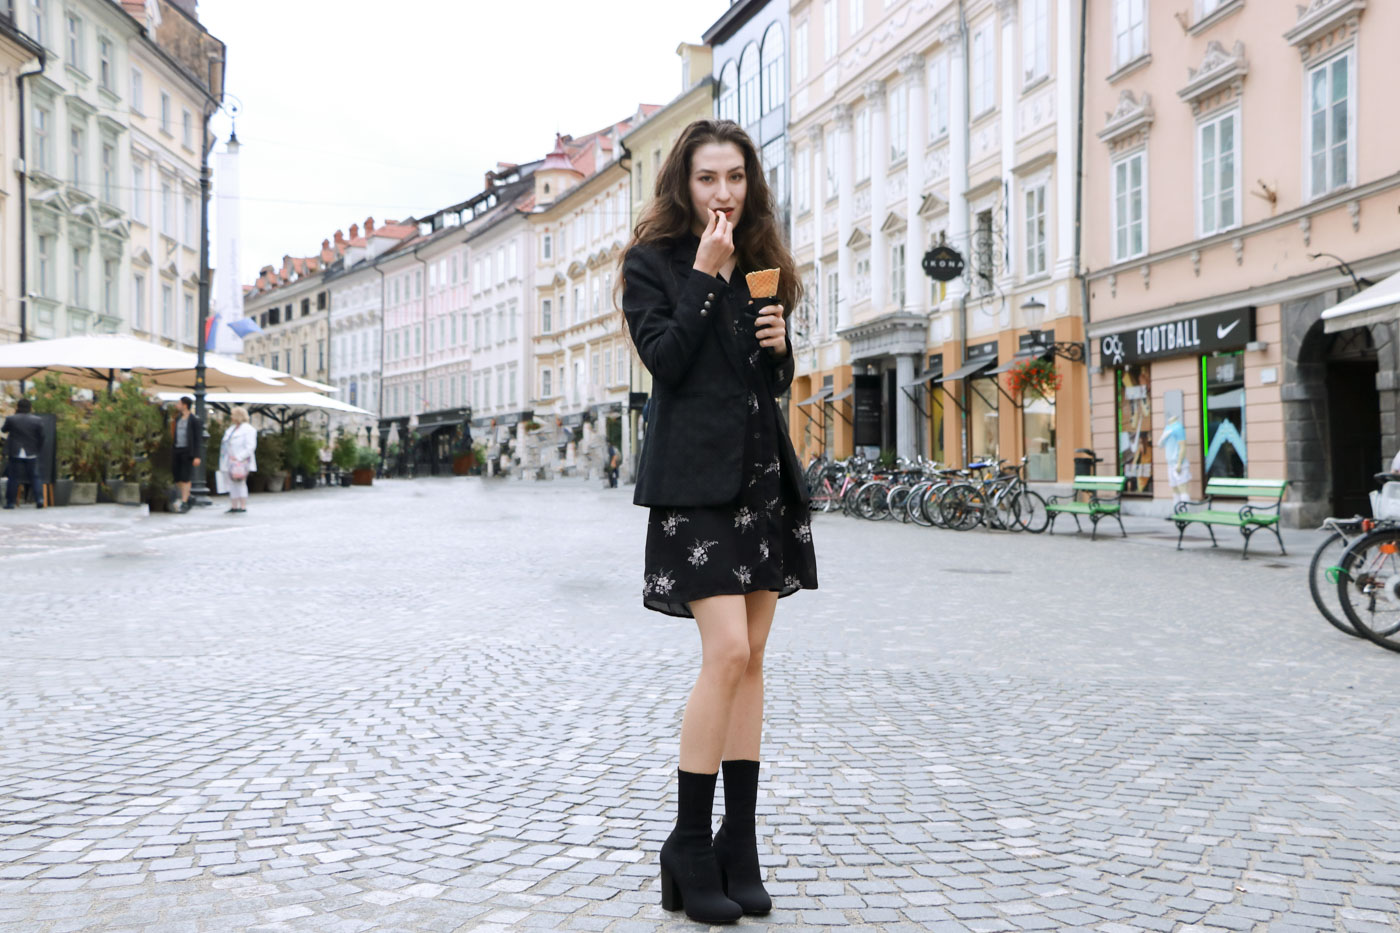 Fashion Blogger Veronika Lipar of Brunette from Wall dressed in chic Friday outfit